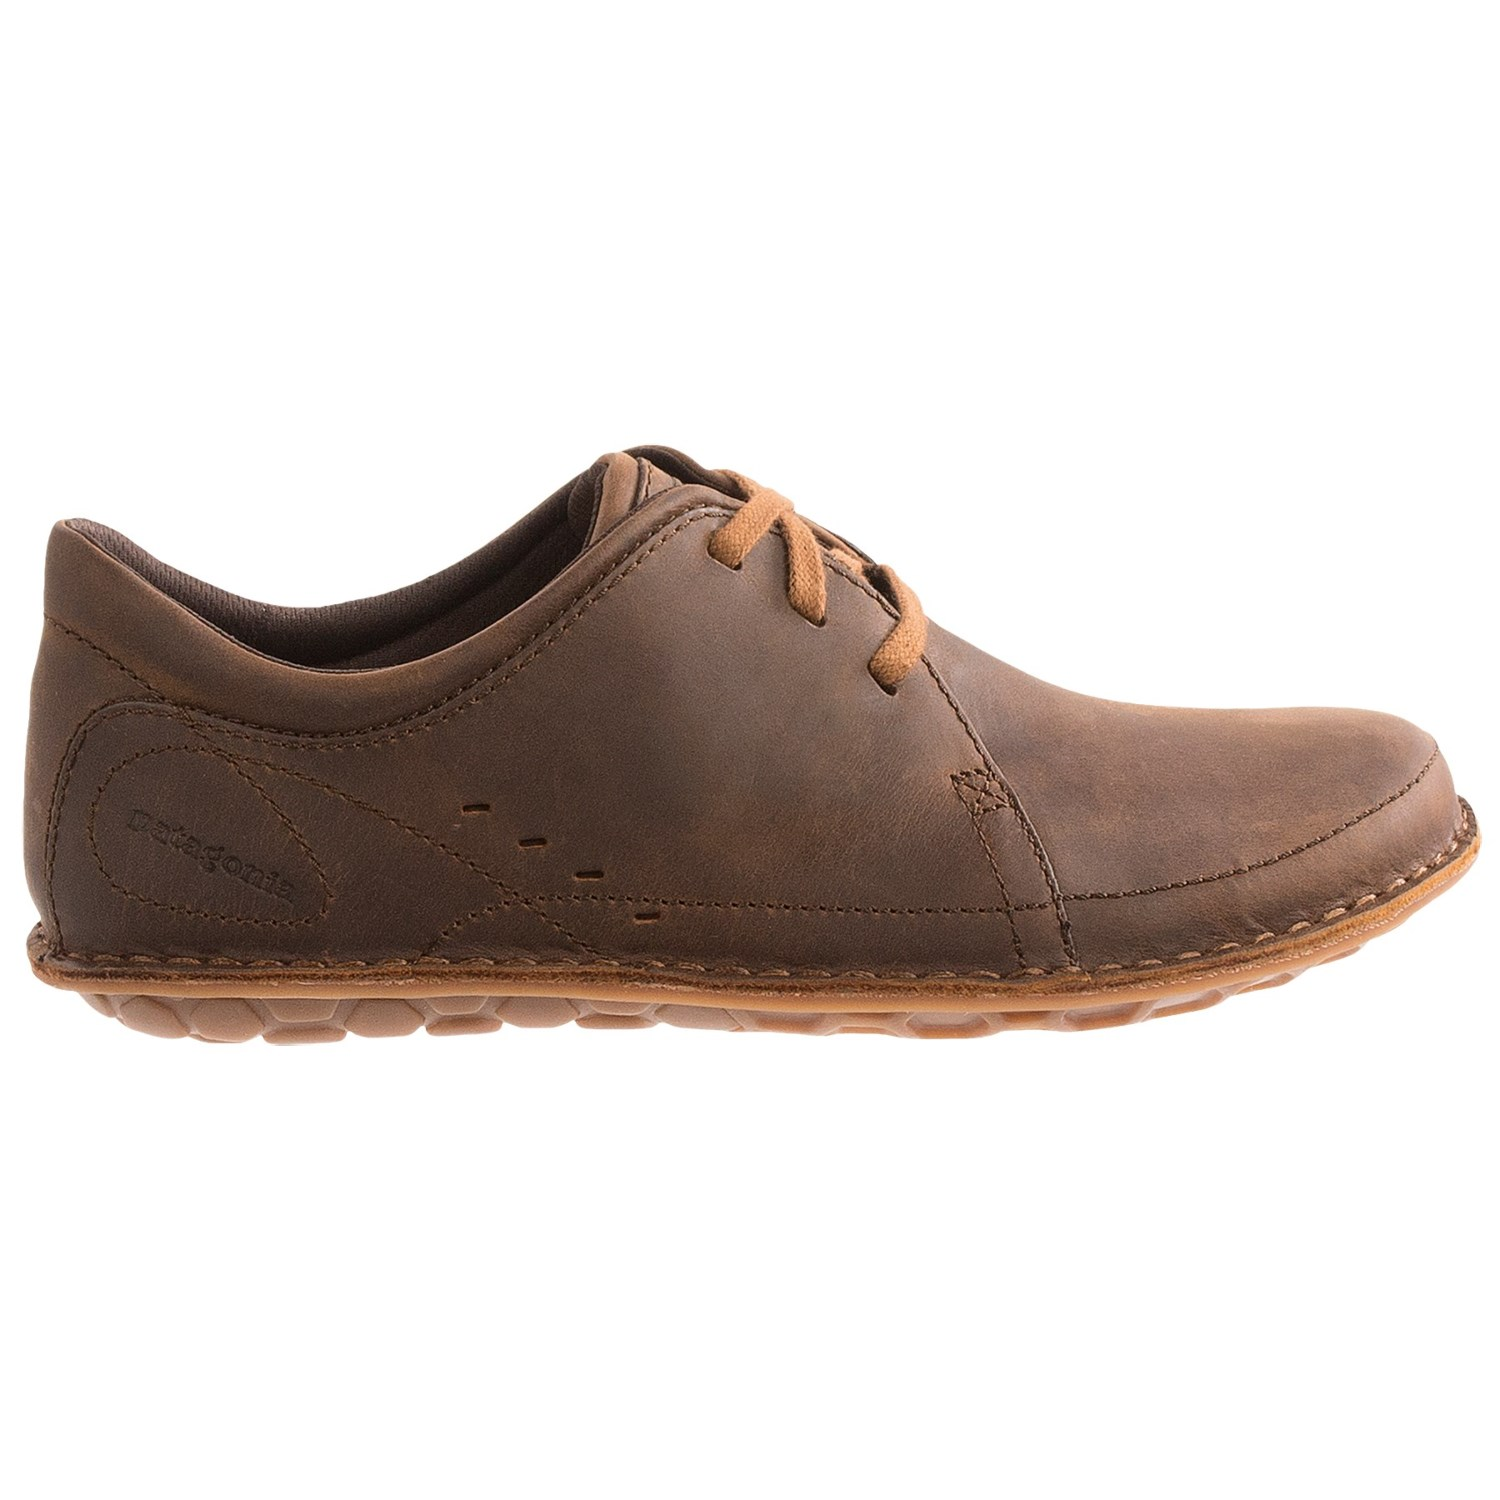 patagonia loulu leather shoes for 7807p